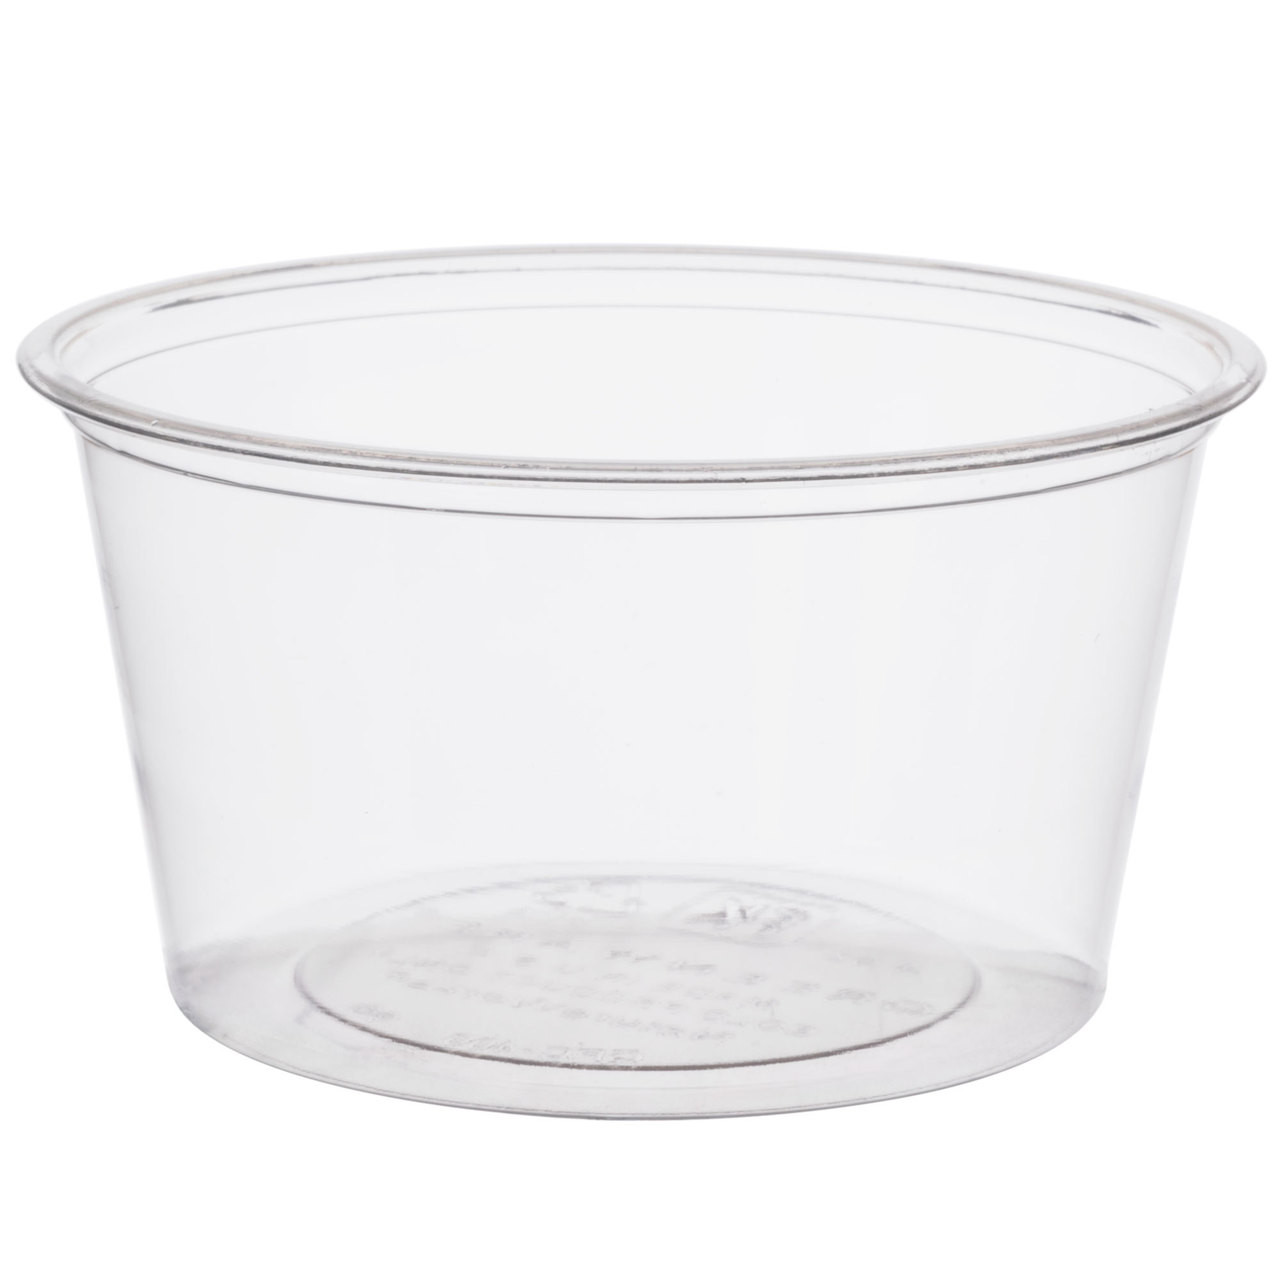 4 oz clear compostable portion cup